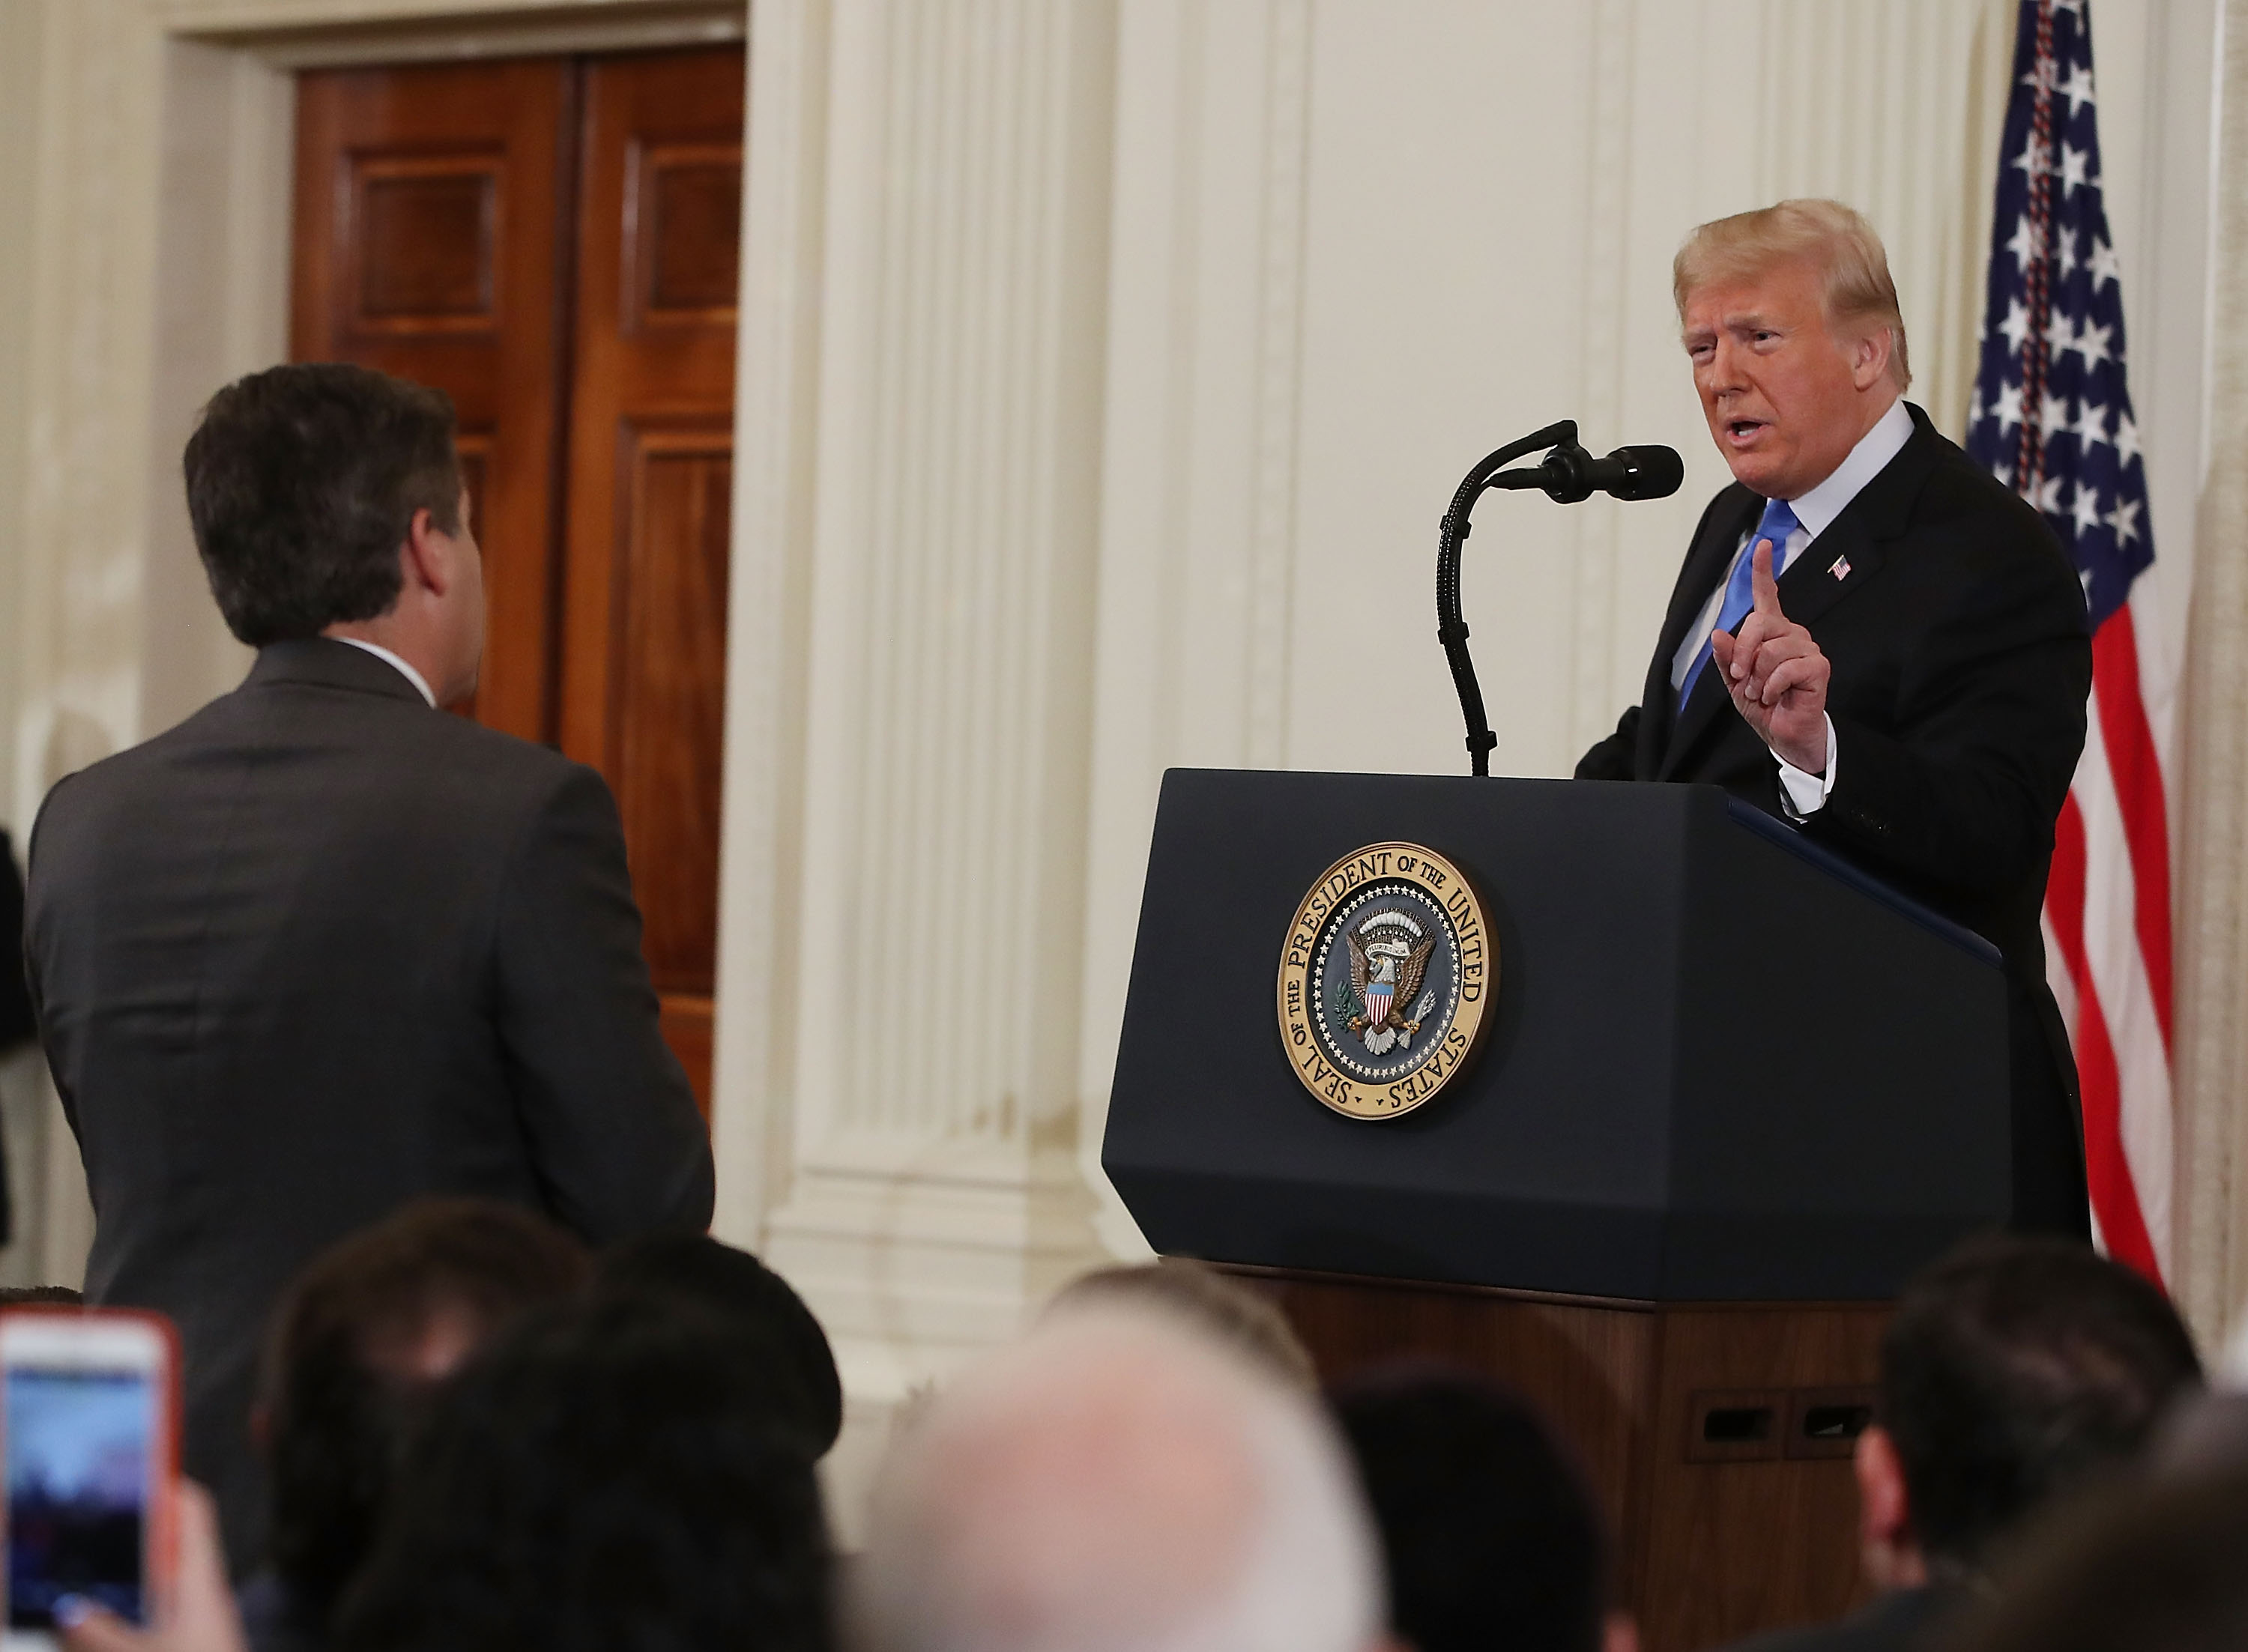 U.S. President Donald Trump gets into an exchange with Jim Acosta of CNN after giving remarks a day after the midterm elections on November 7, 2018 (Mark Wilson/Getty Images)